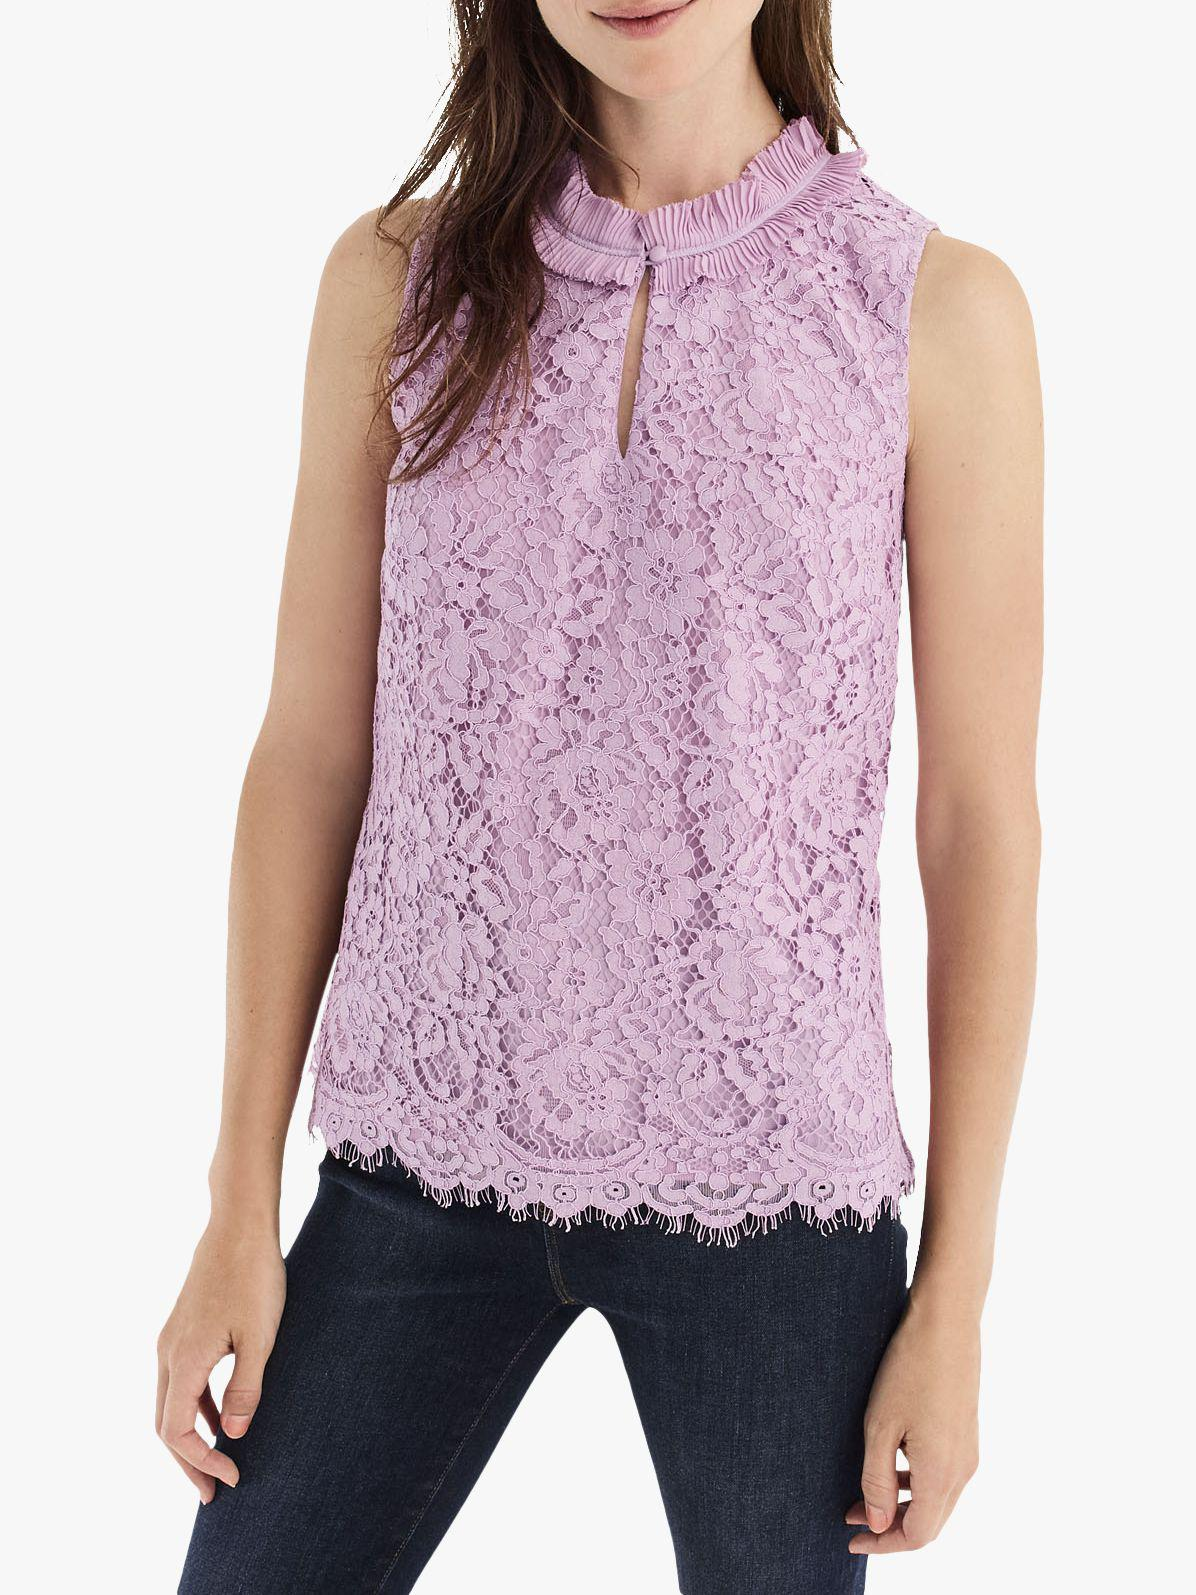 793bfd8116d663 J.Crew. Women s Purple Melody Unicorn Lace Top. £78 £31 From John Lewis and  Partners